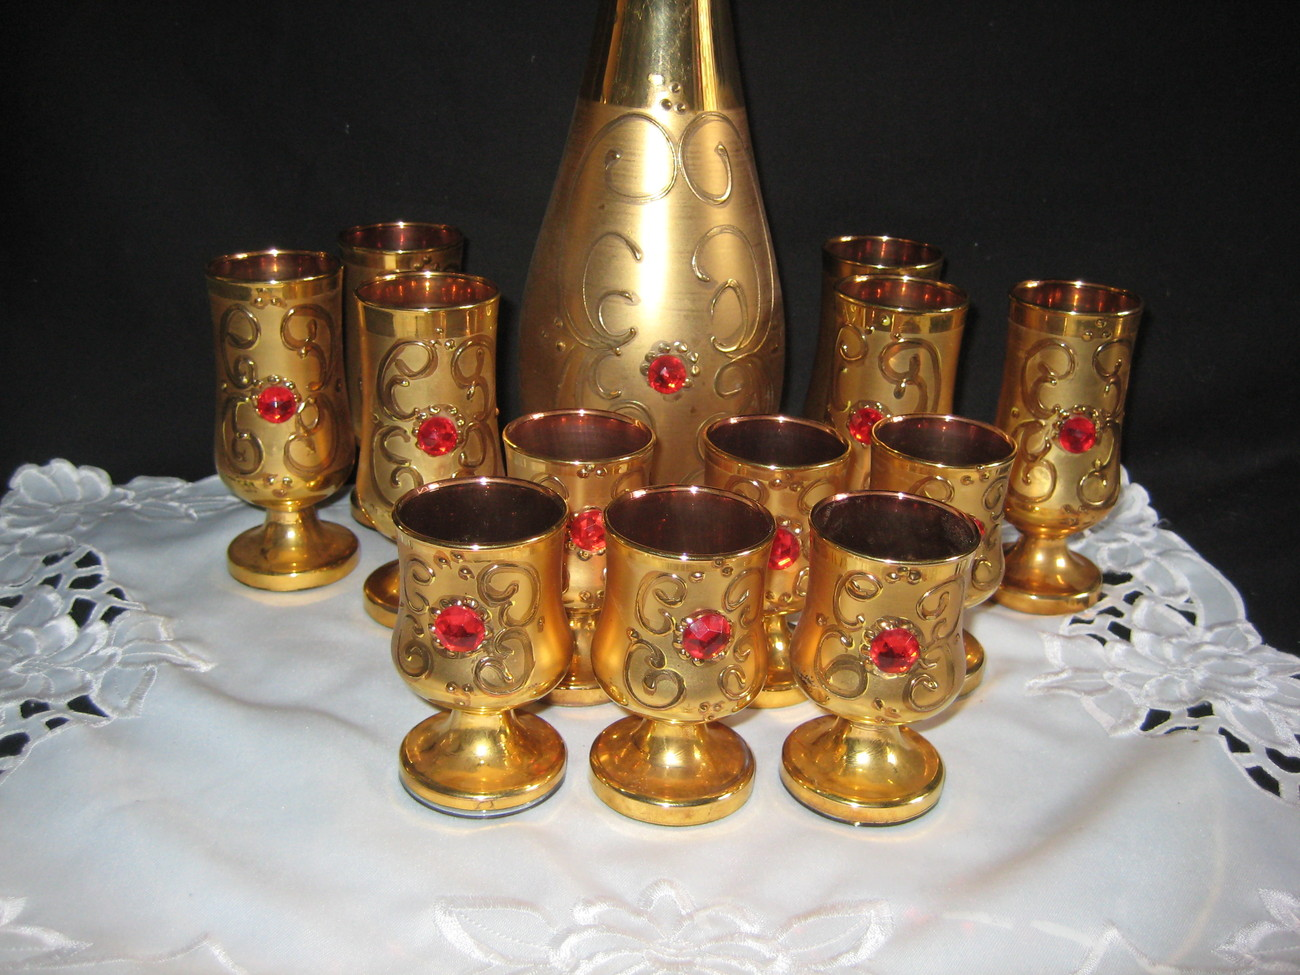 Antique gold decanter set with 12 glasses and pretty red sto